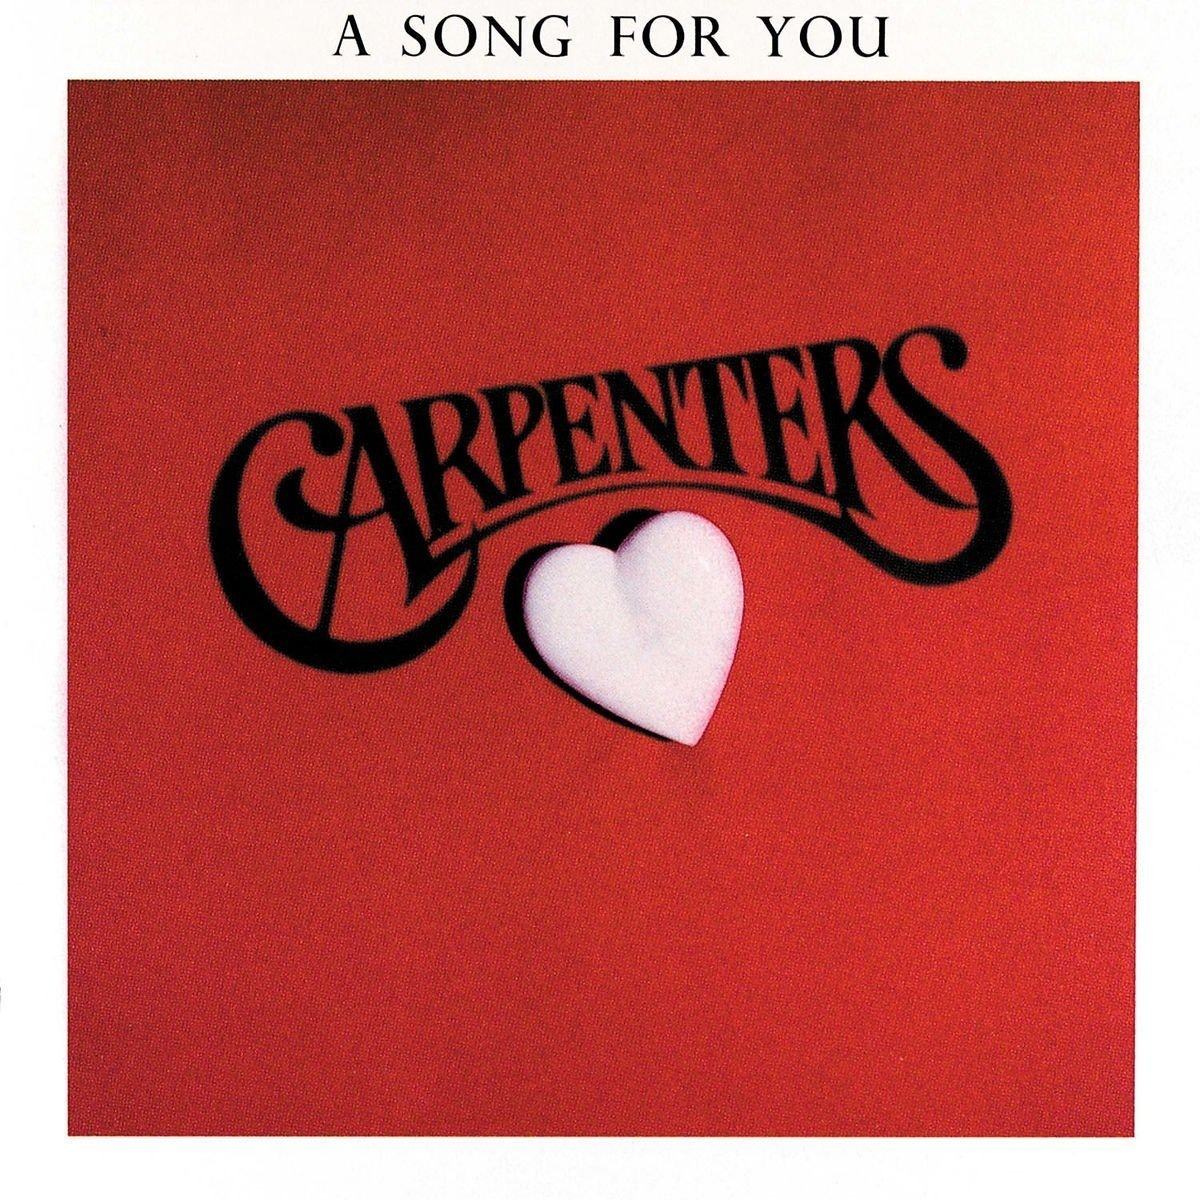 Виниловая пластинка The Carpenters, A Song For You (0602557403770)